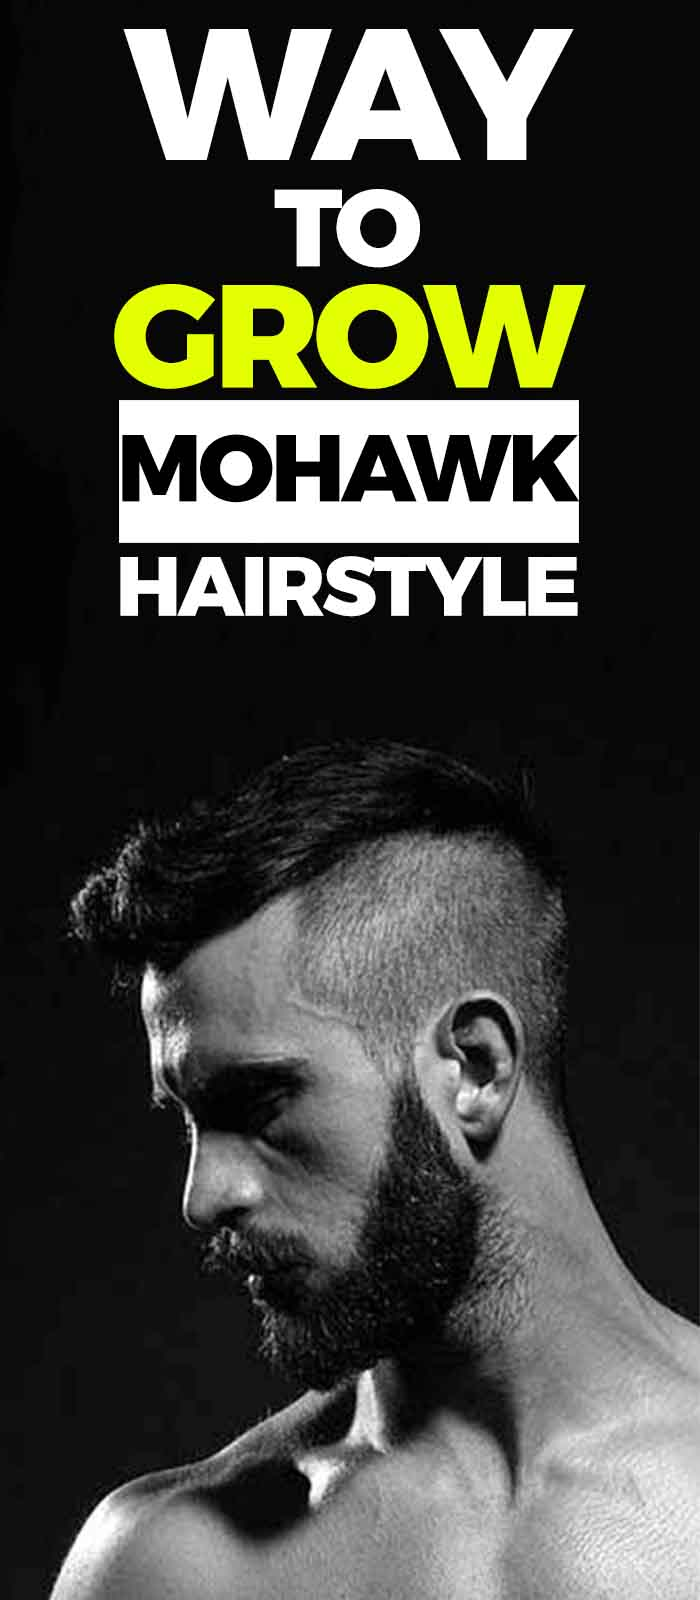 Perfect Mohawk Haircut For Men.